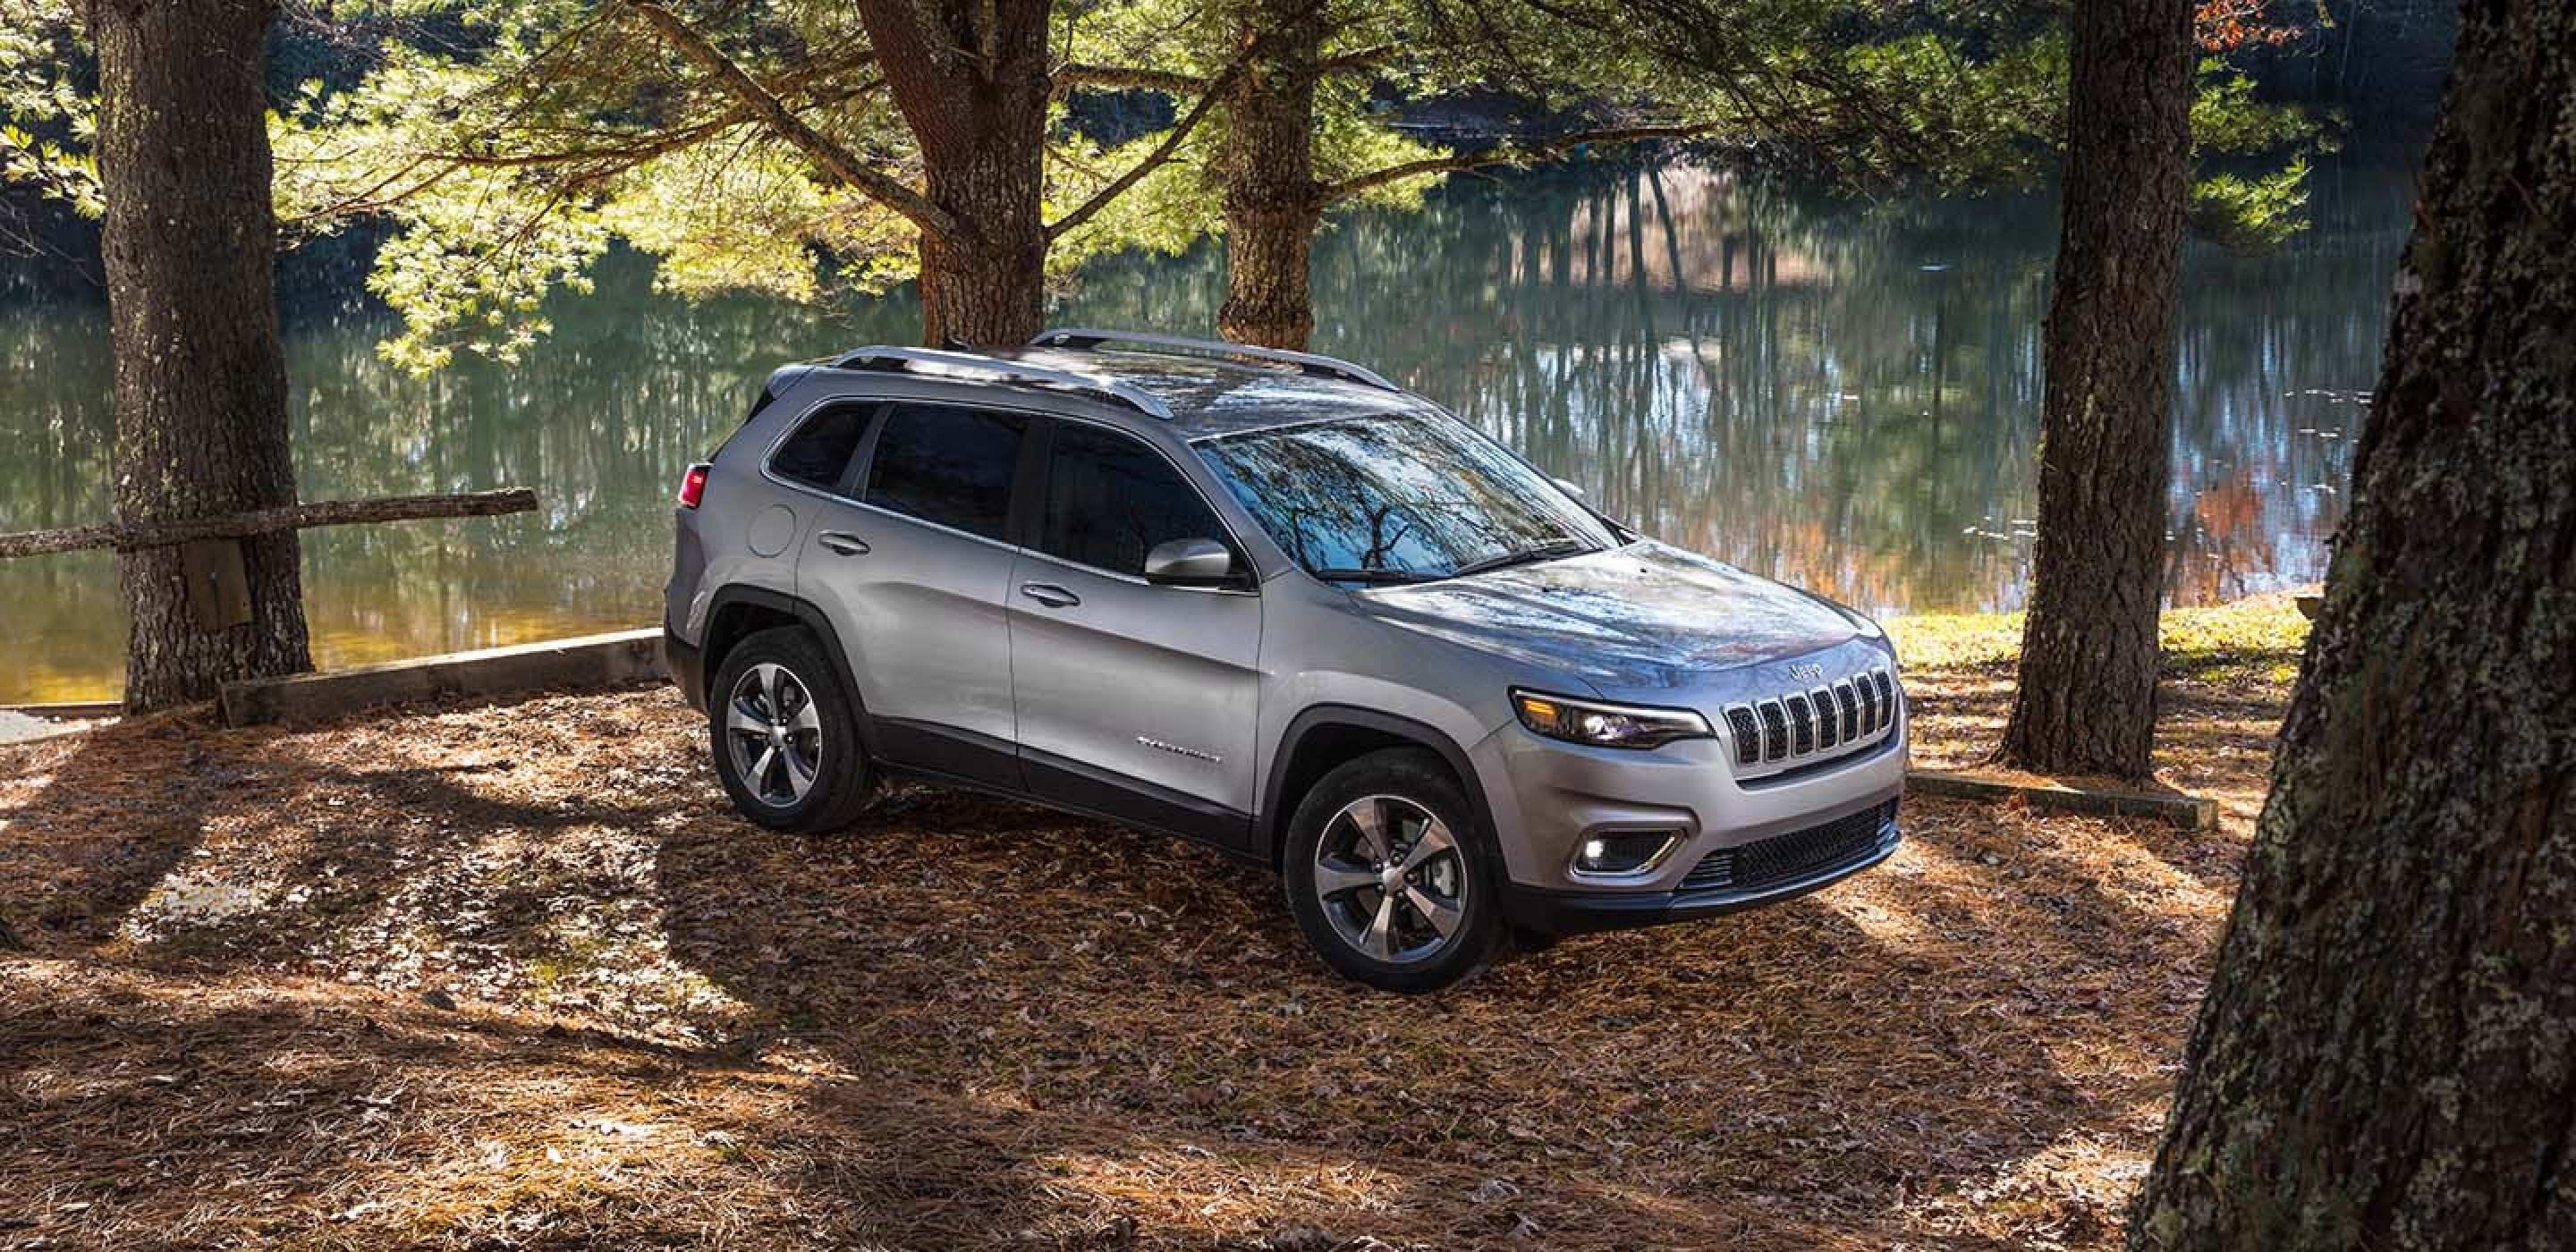 28 Great Jeep Cherokee 2019 Video Interior Exterior And Review Performance by Jeep Cherokee 2019 Video Interior Exterior And Review